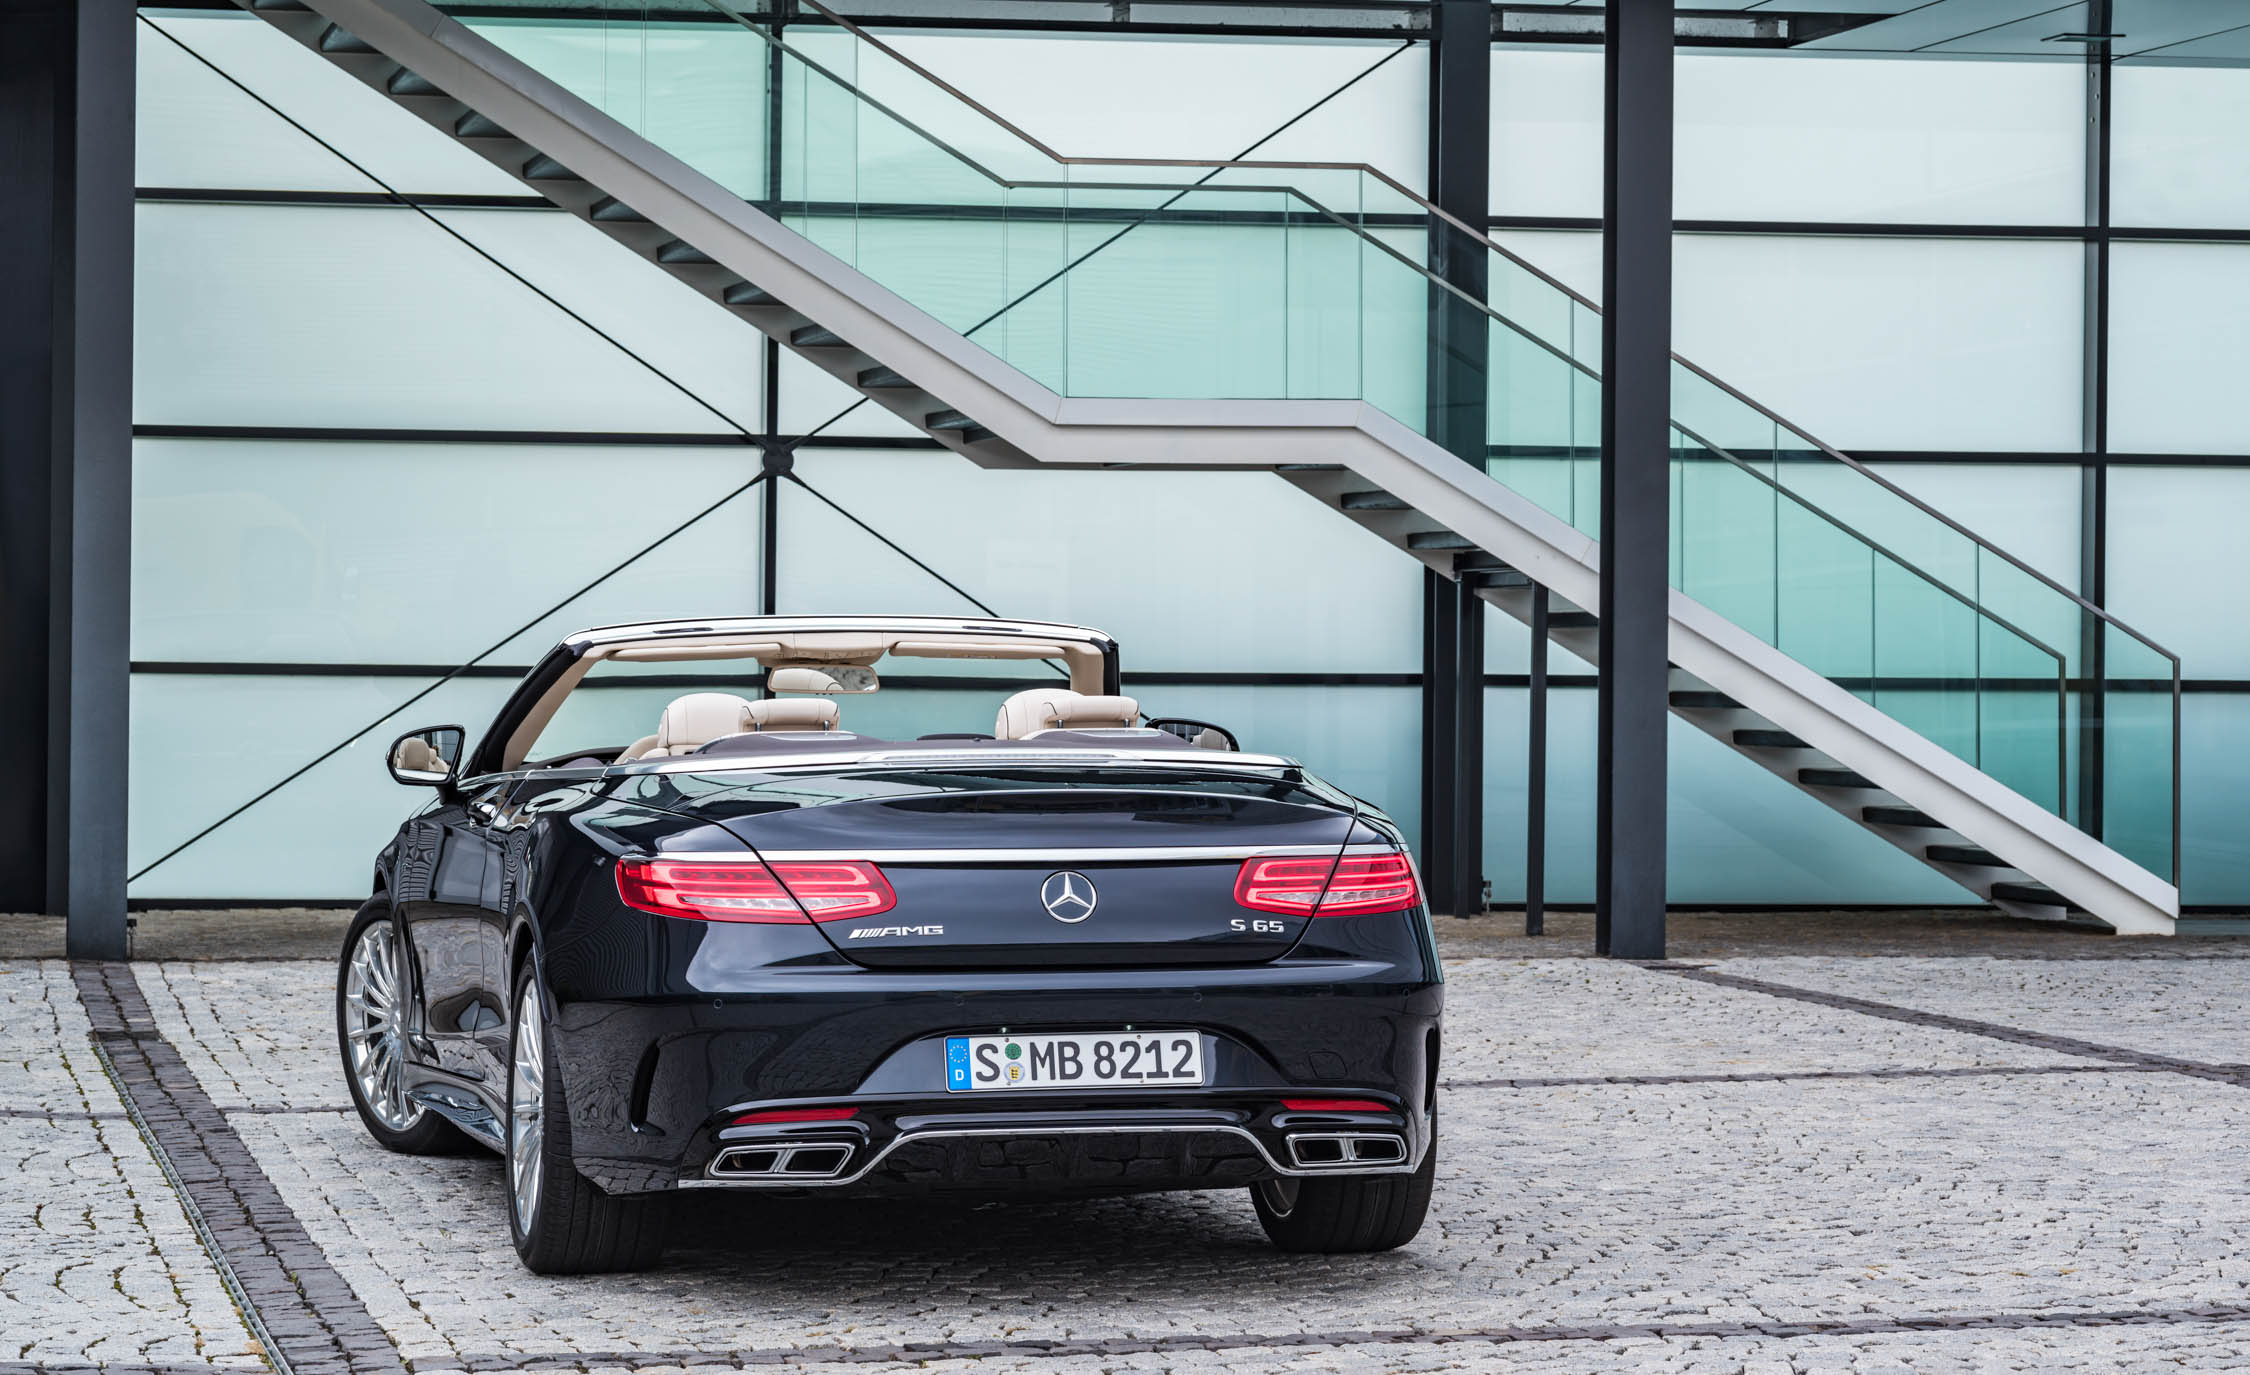 2017 Mercedes Amg S65 Cabriolet Exterior Rear View Roof Open (Photo 8 of 15)